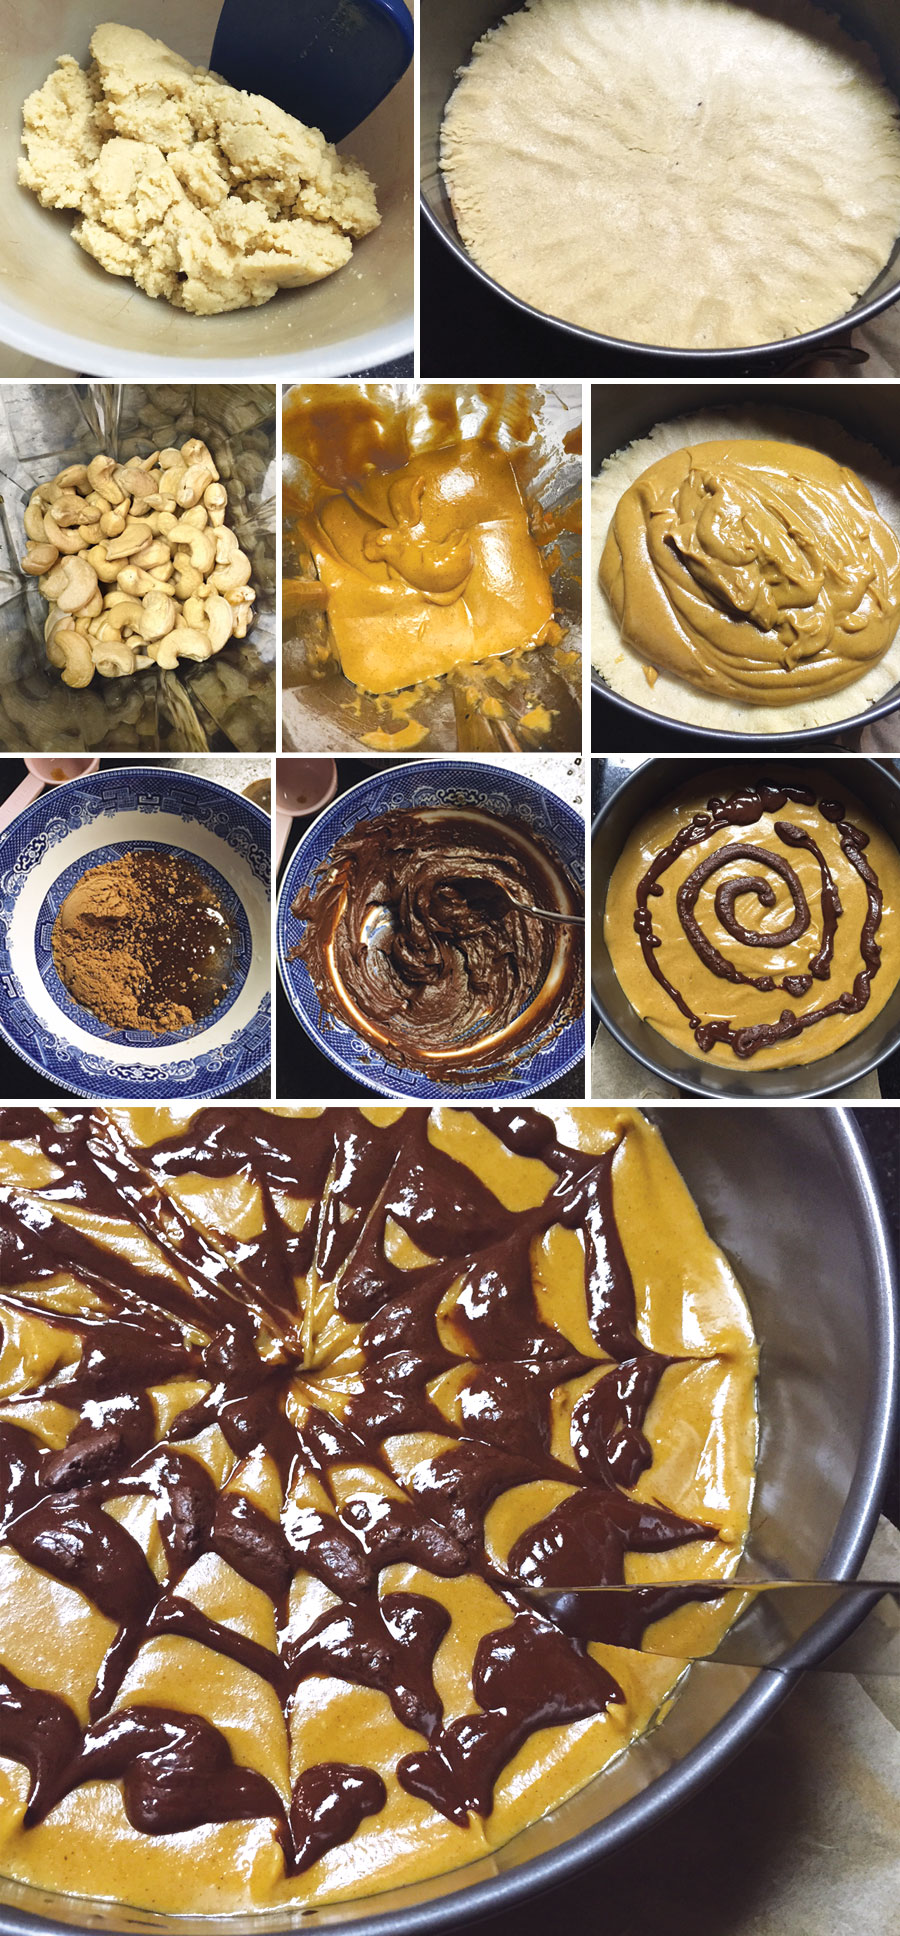 steps to make pumpkin chocolate cheesecake